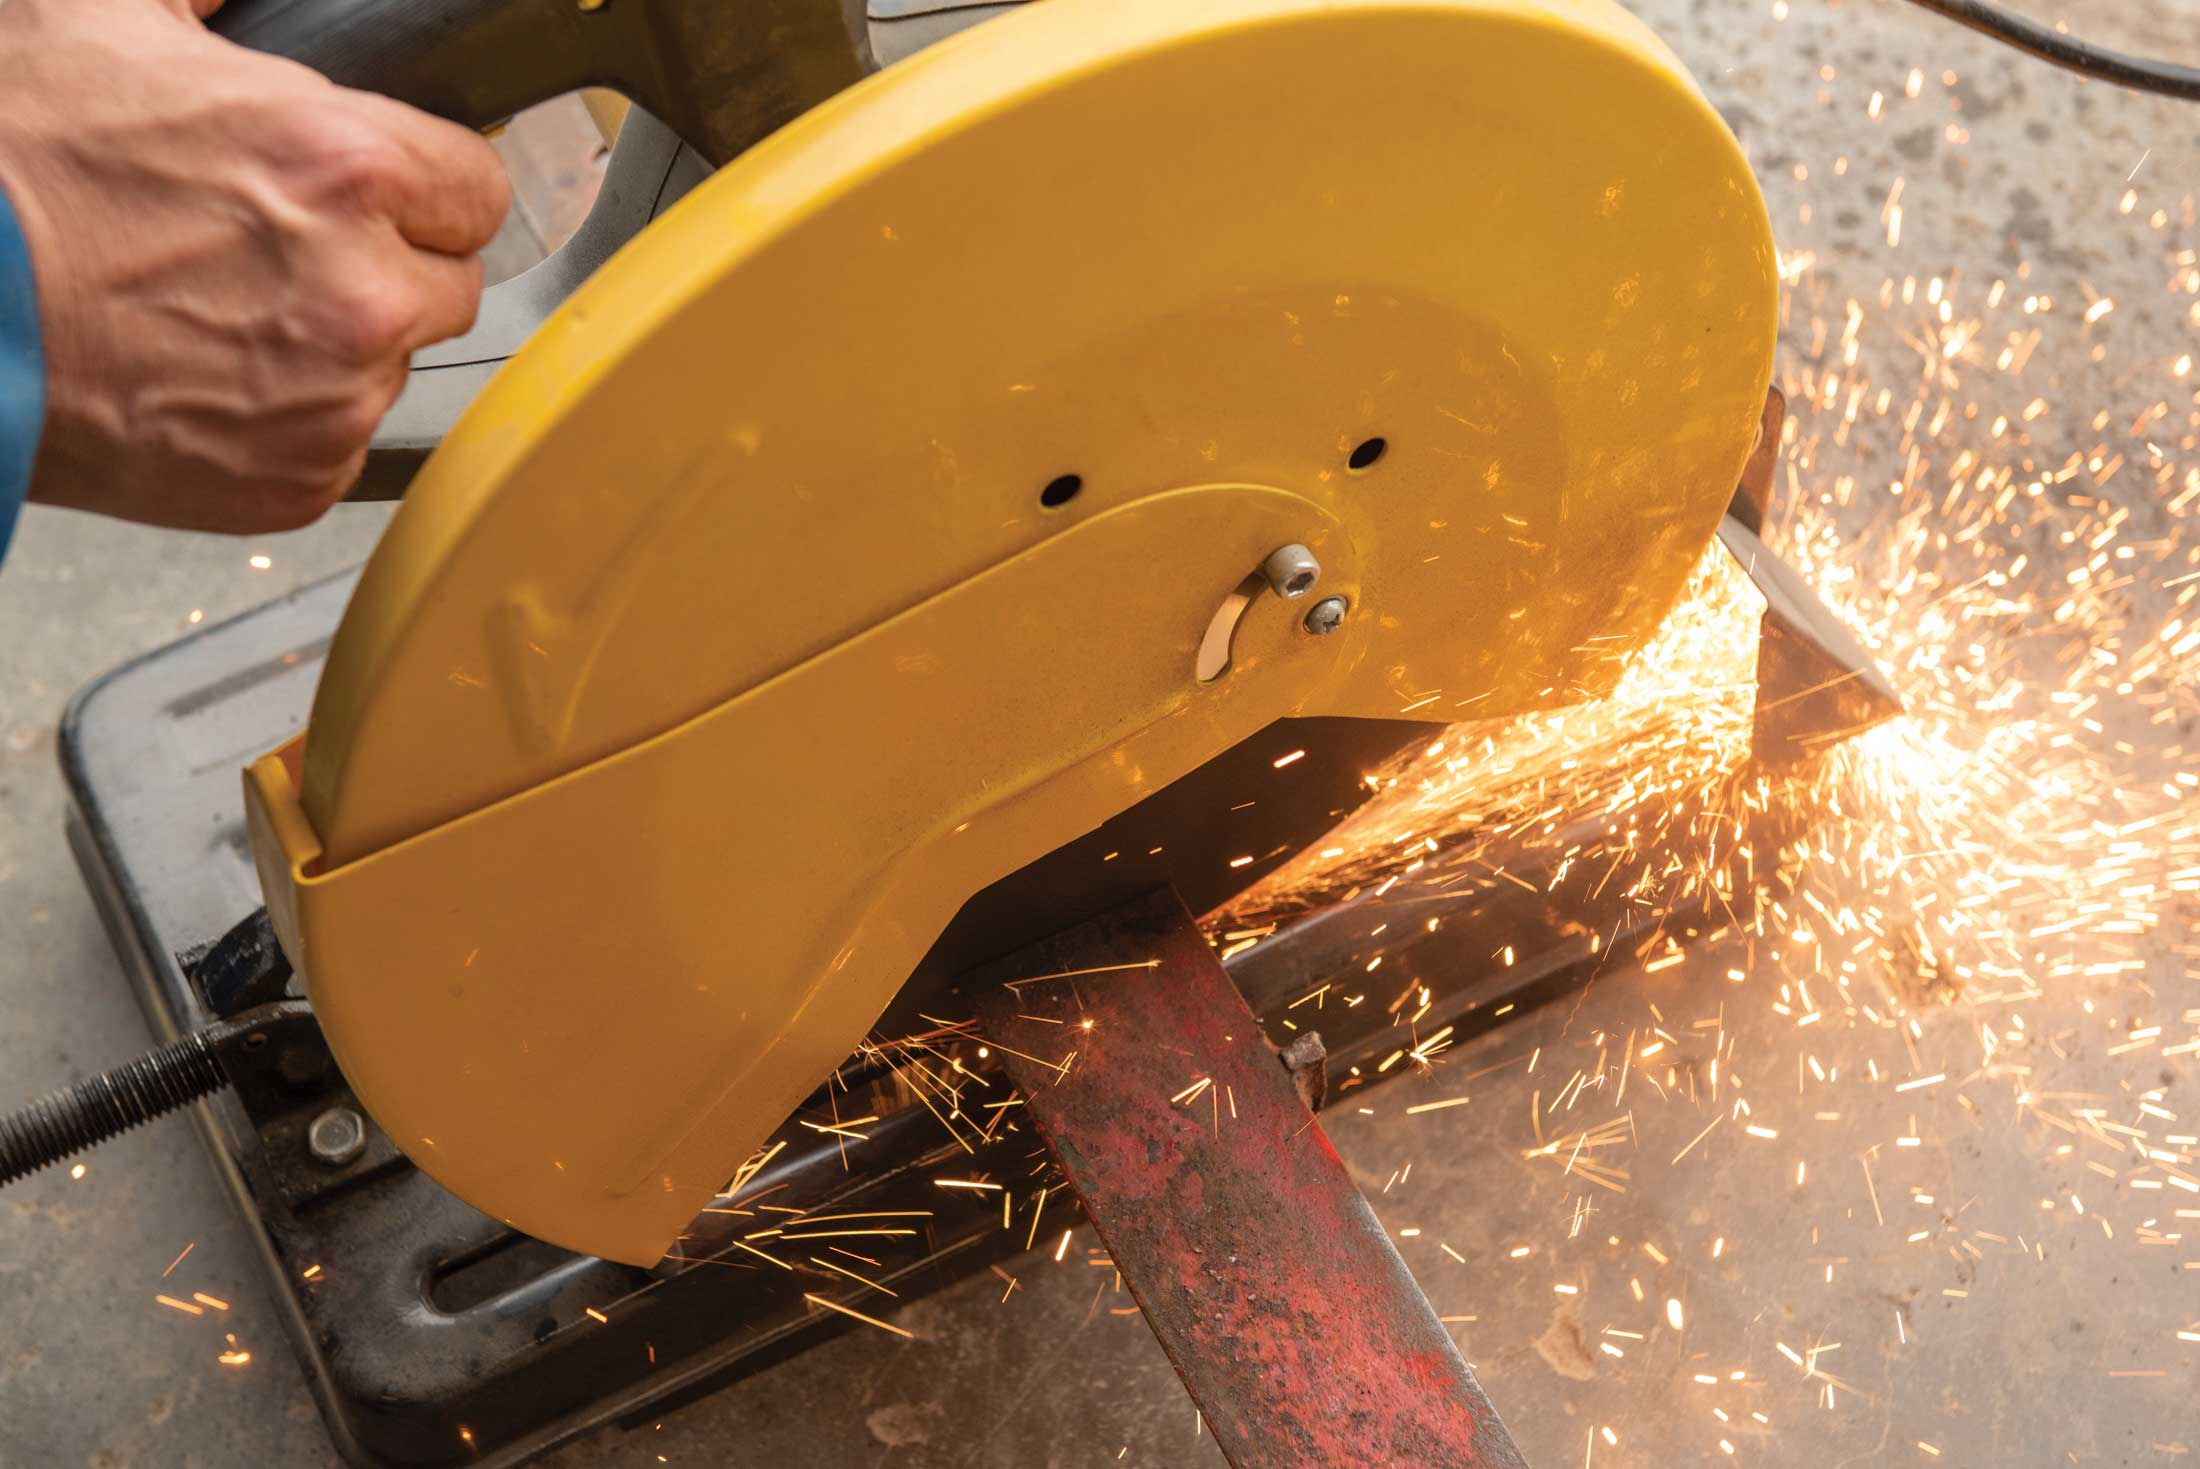 Step 3, cutting: I used a chop saw to cut most of the metal parts to length. A metal cutting bandsaw is another method for cutting metal parts.